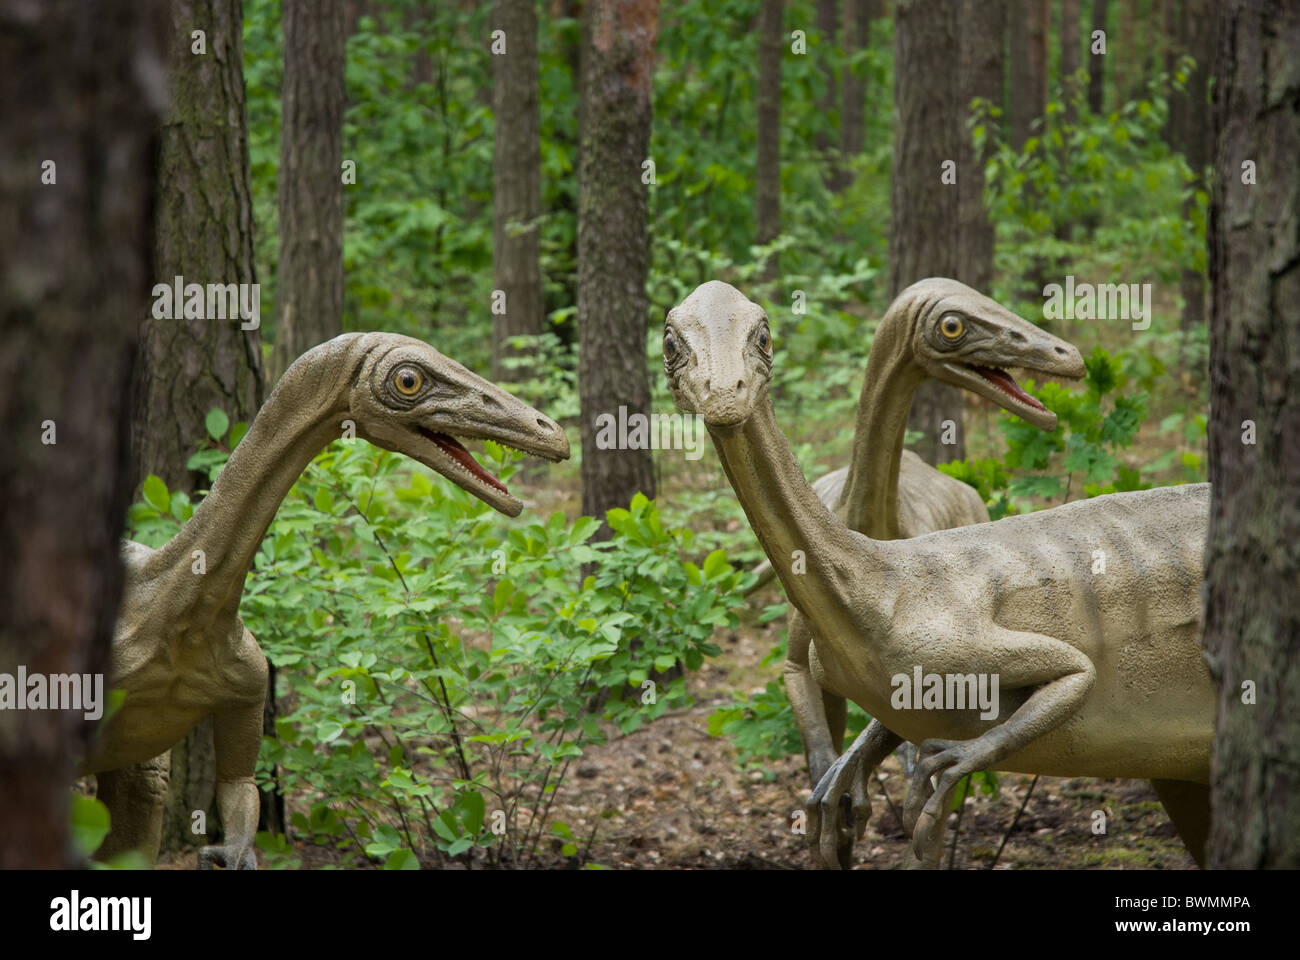 Dinosaurs in the theme park in the theme park - Stock Image